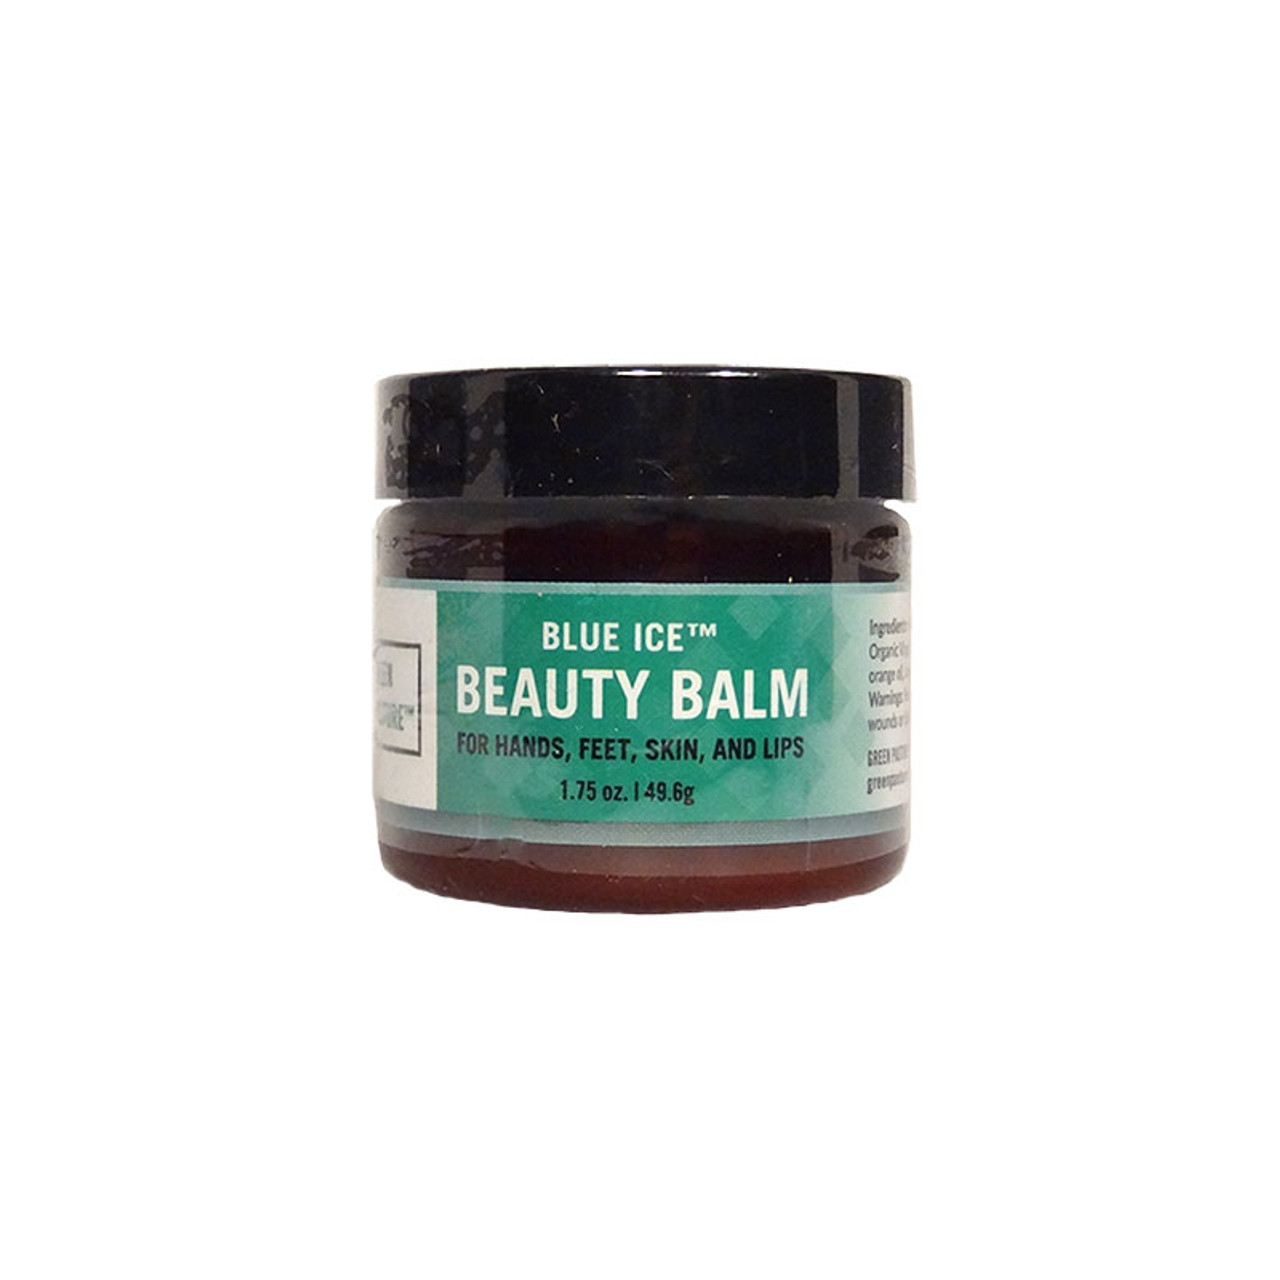 Front view of a container of Green Pastures Fermented Cod Liver Oil Beauty Balm for hands, feet, skin and lips.